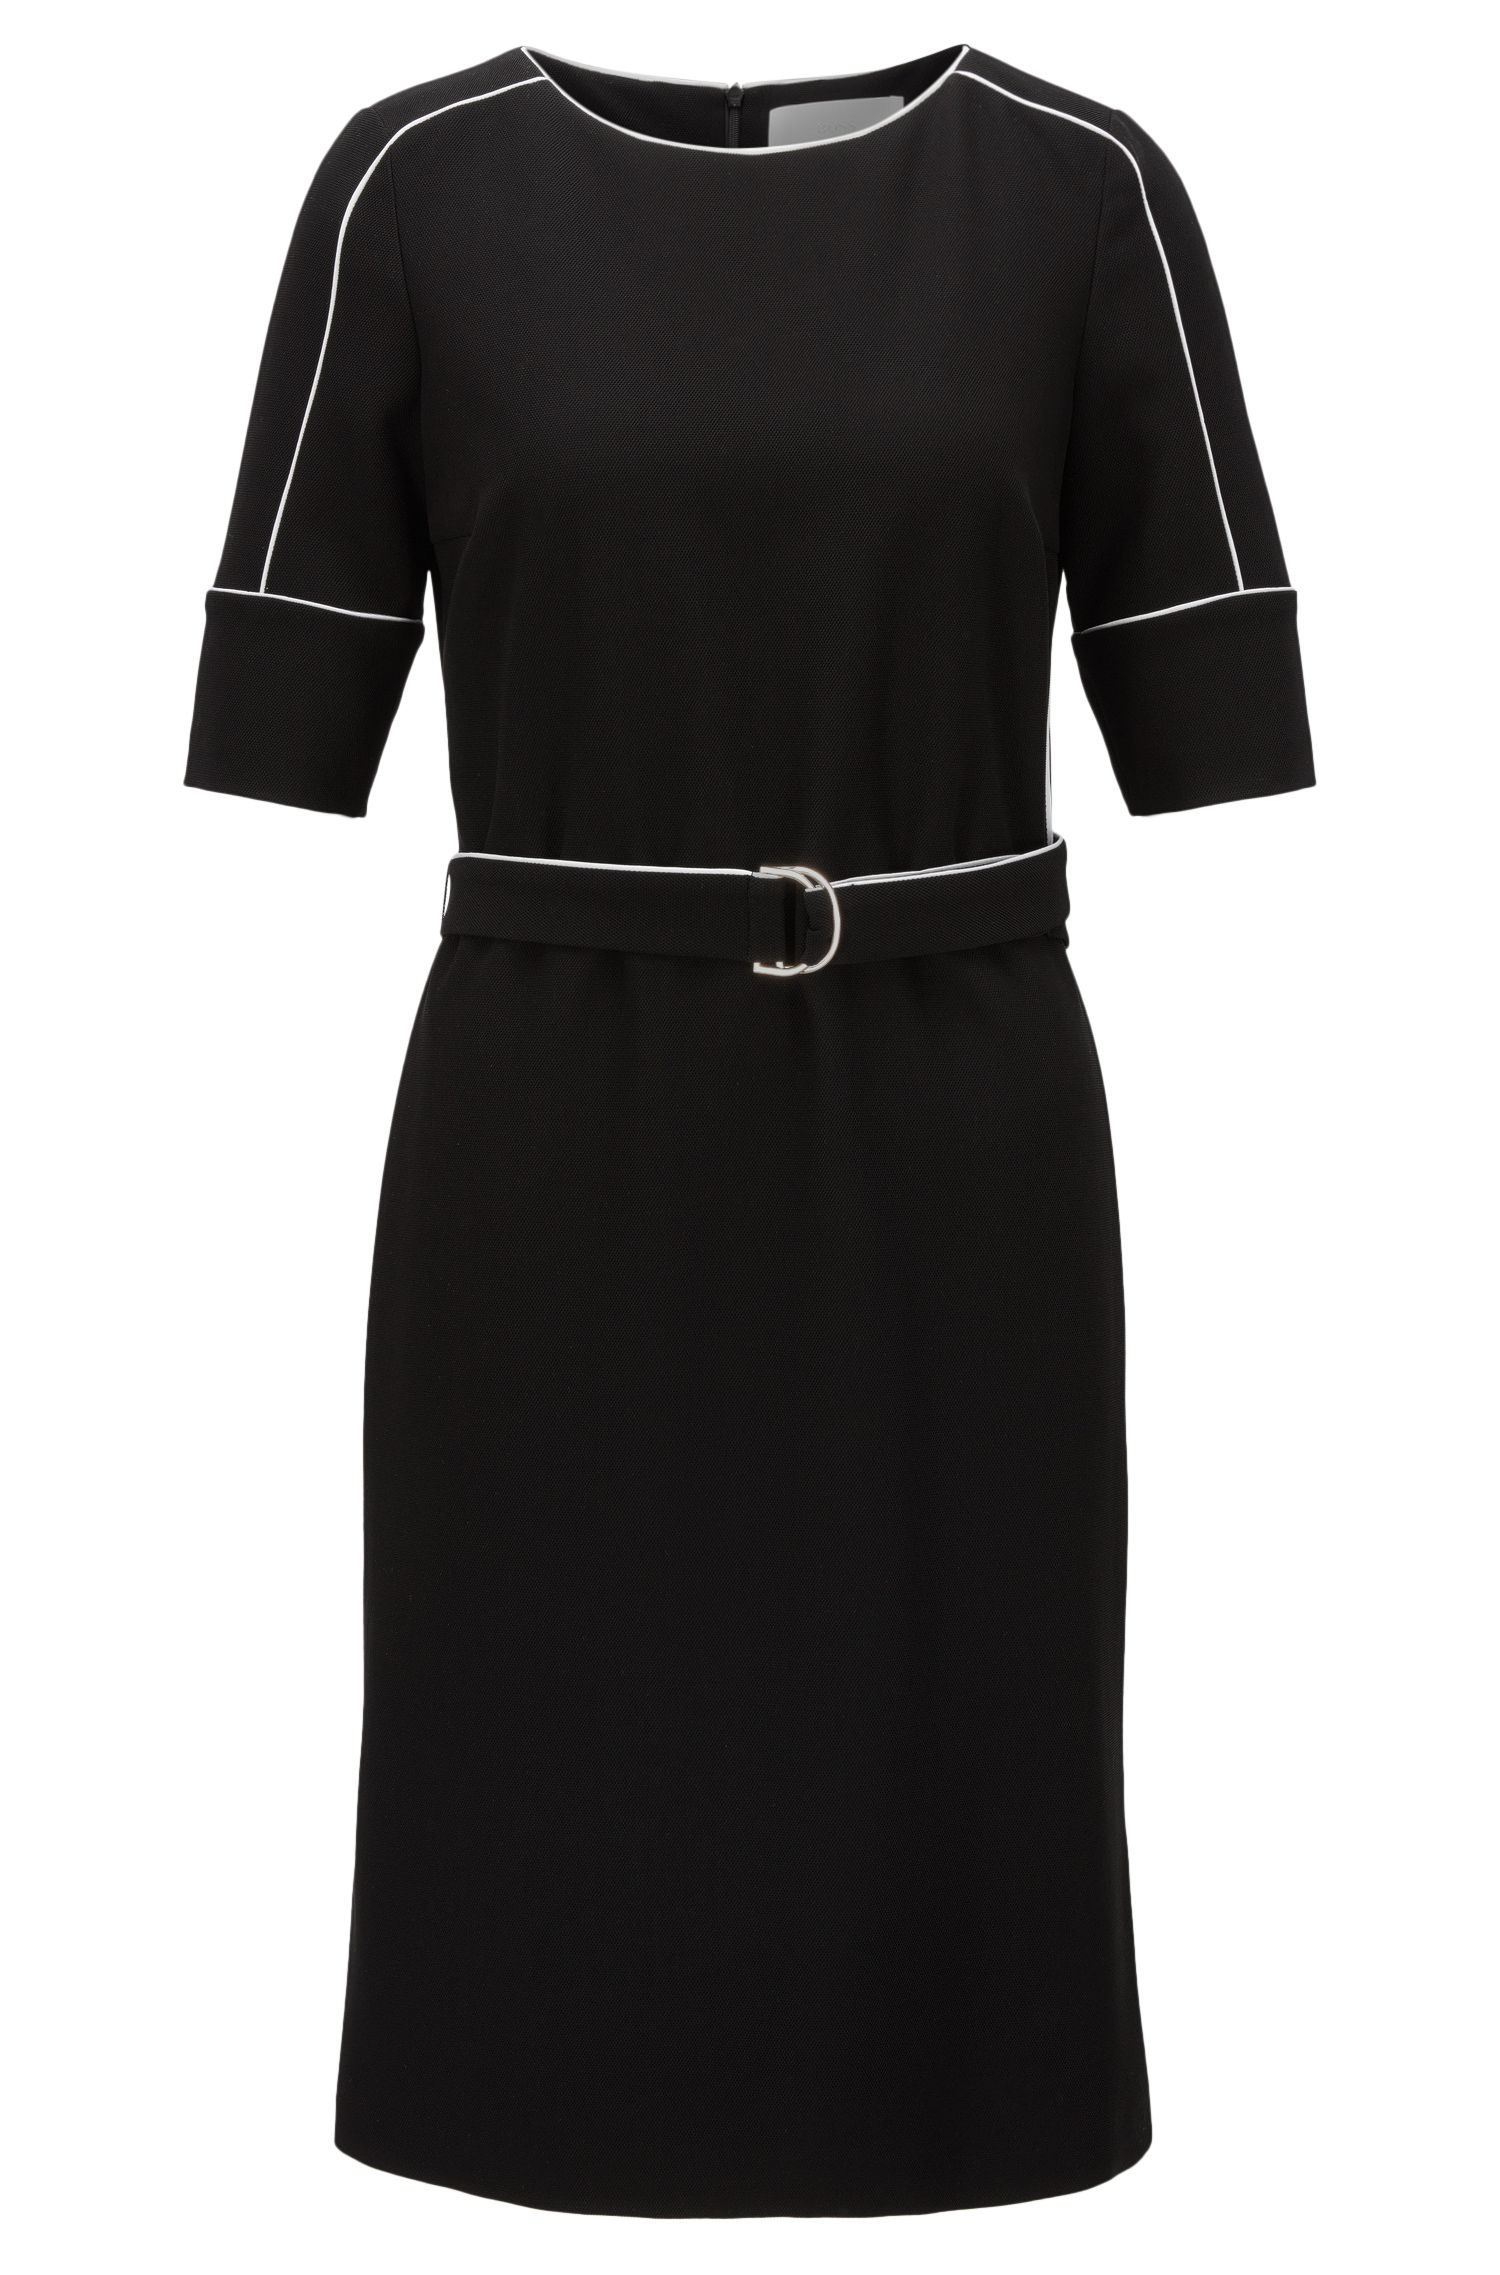 Jersey dress with contrast piping